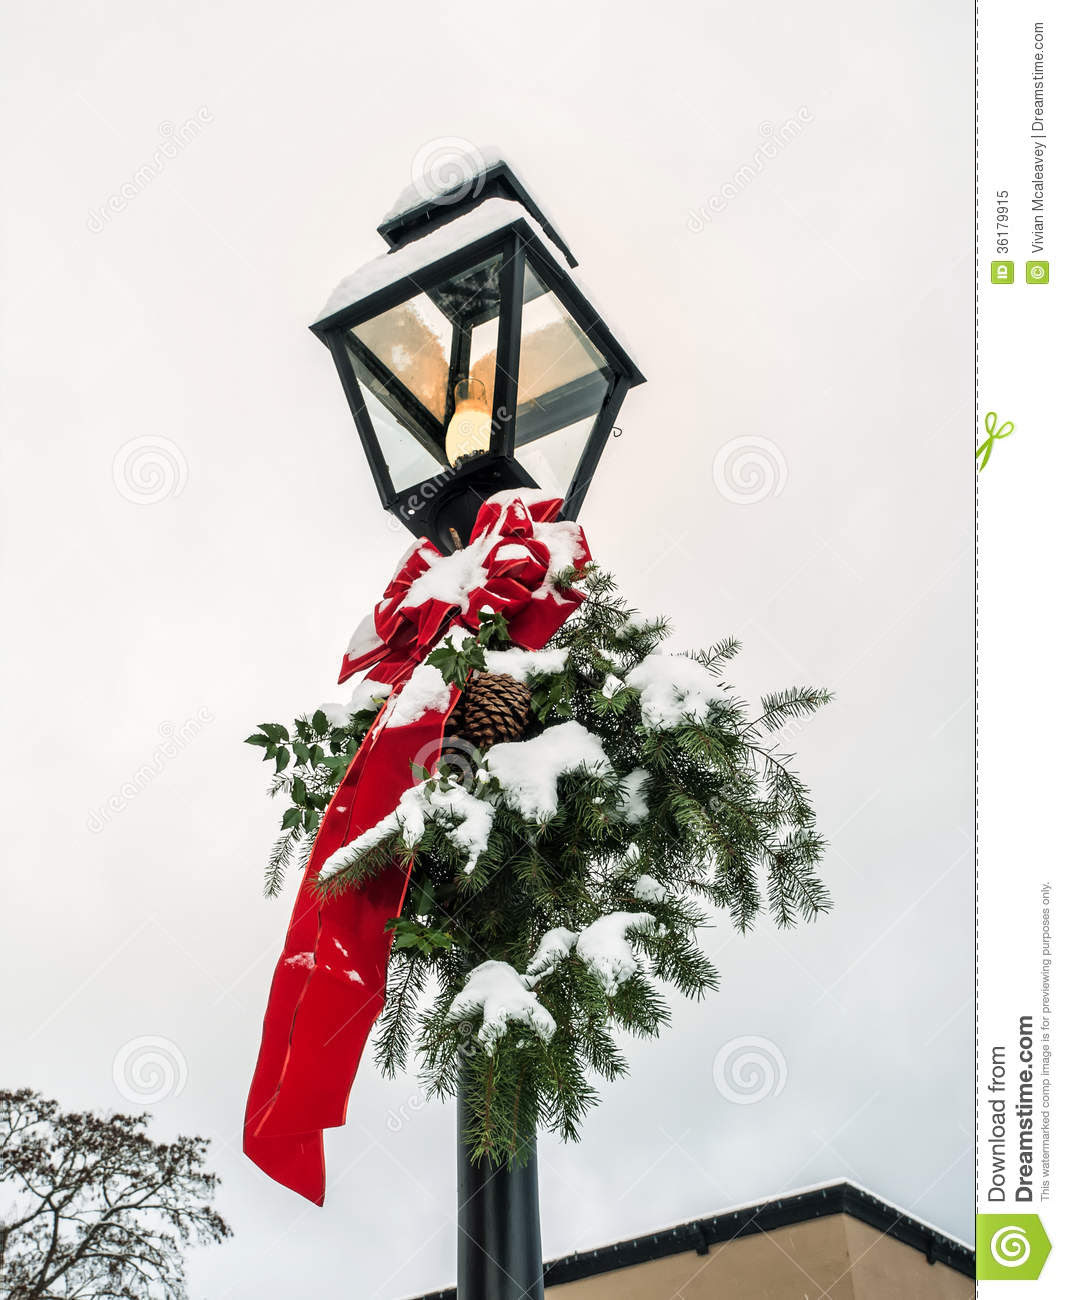 christmas decoration lamp post comproxy comproxy